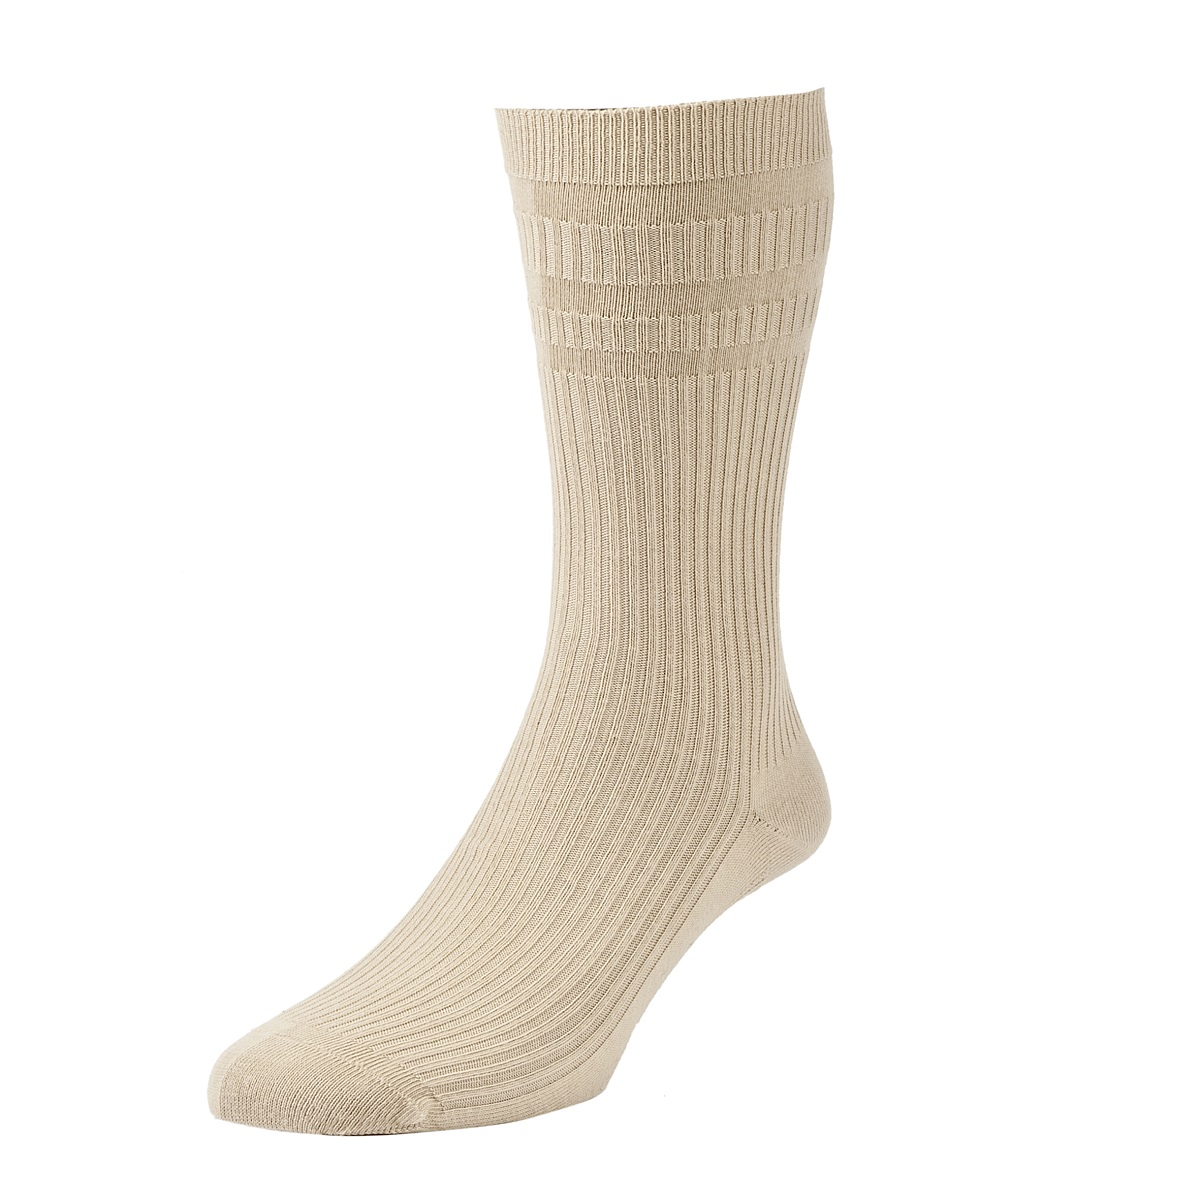 HJ Hall Softop Mens Cotton Socks size 11-13  Oatmeal HJ91